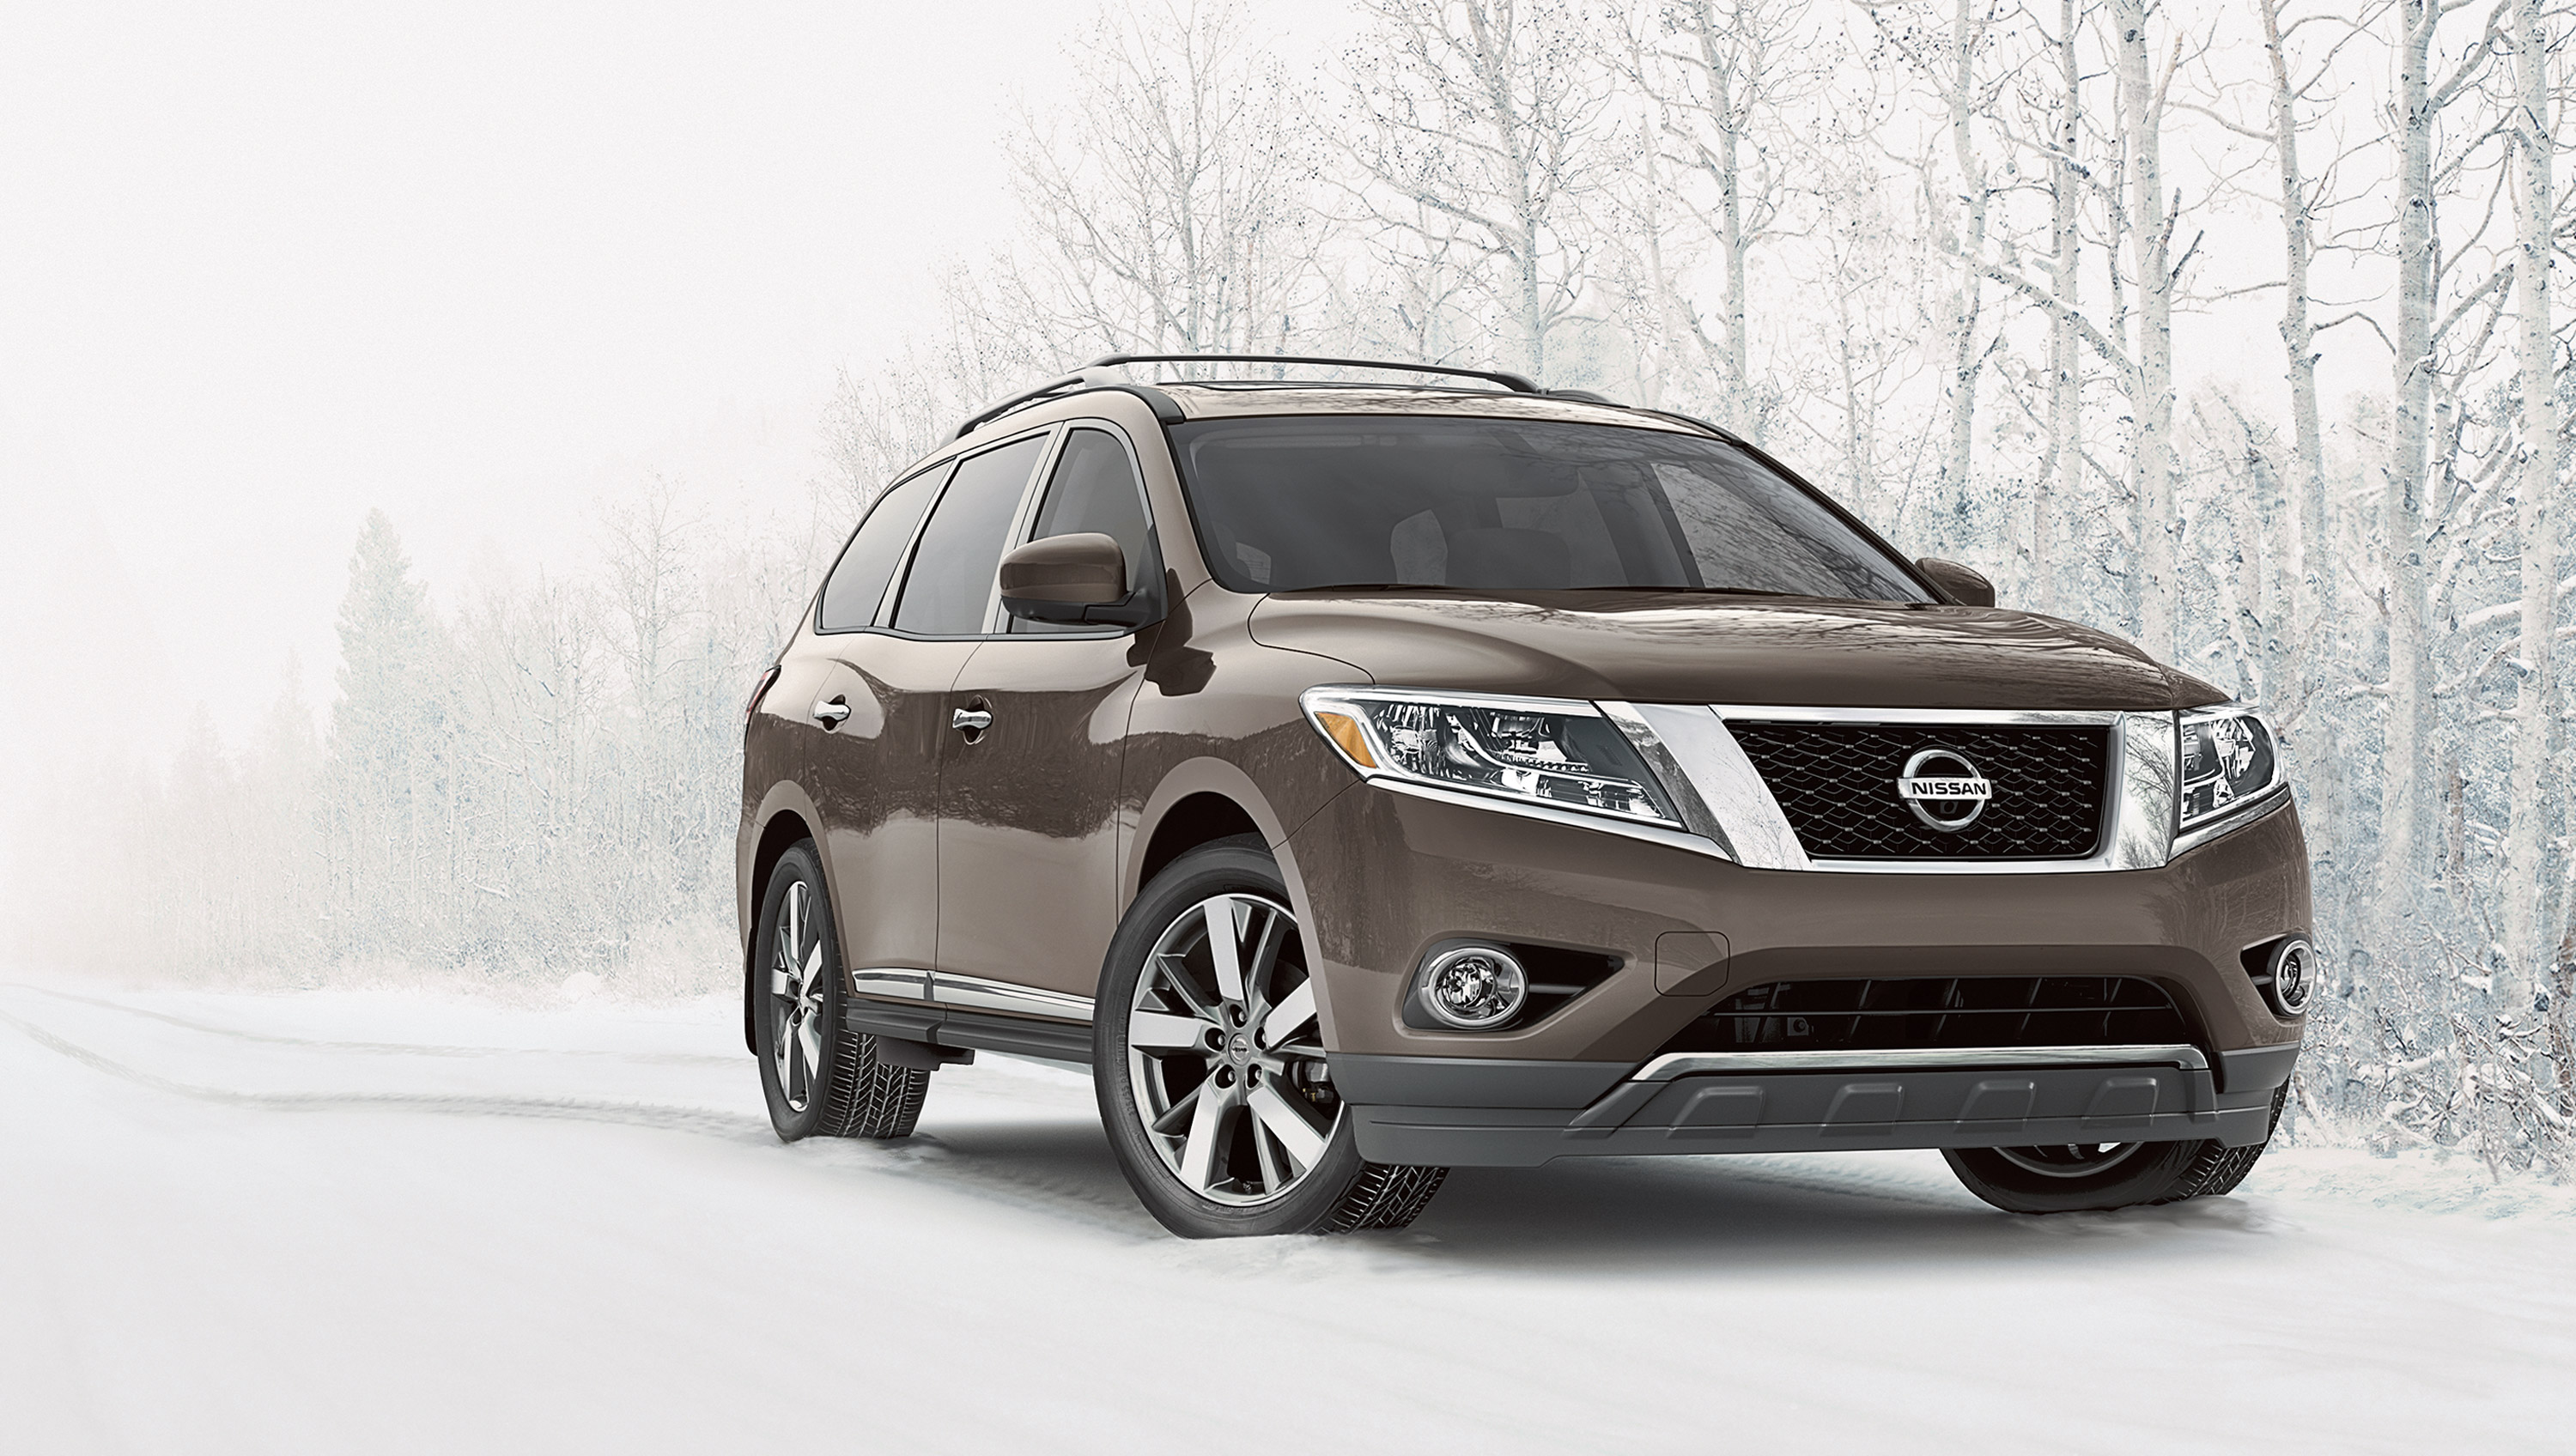 Best Nissan Juke Lease Deals Nissan Pathfinder Lease Deals Miami Exercise Deals Brisbane